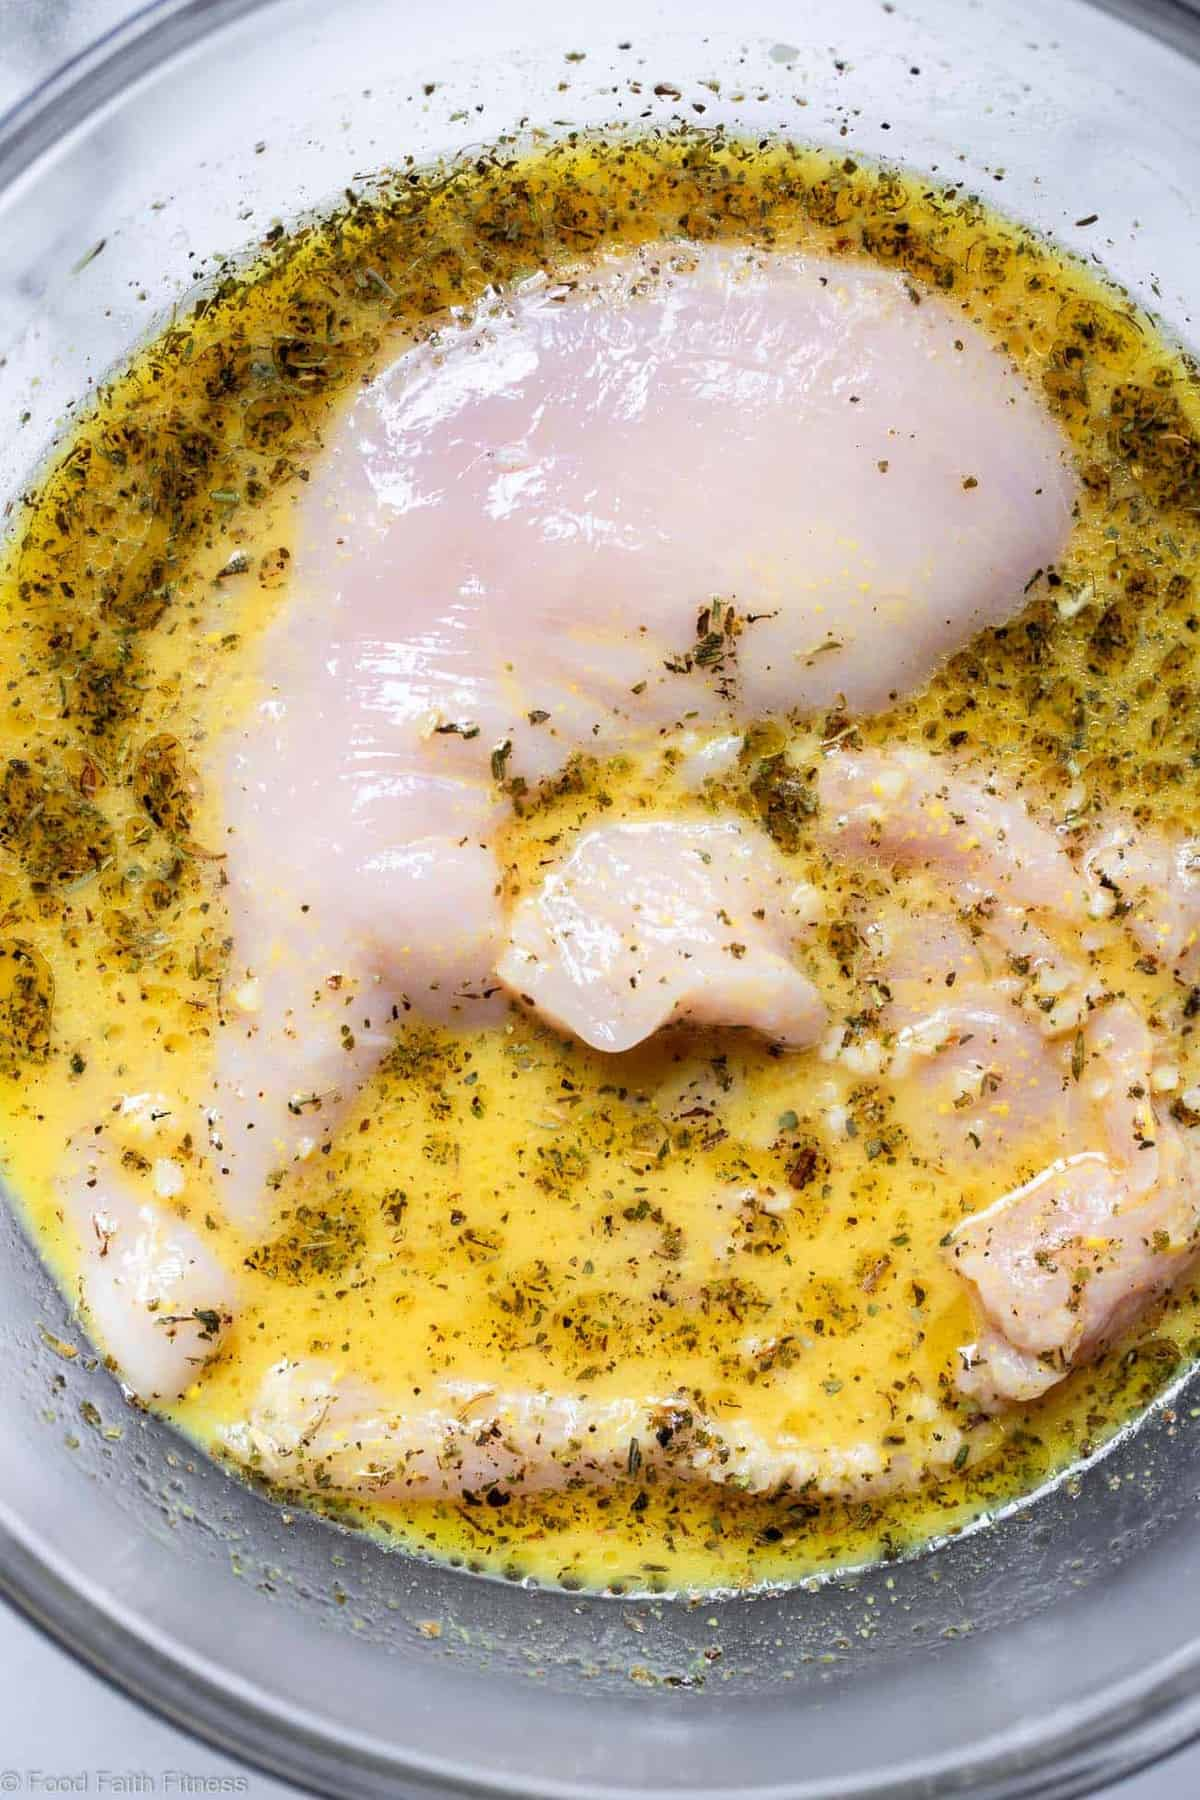 Grilled Chicken breast in a bowl of marinade